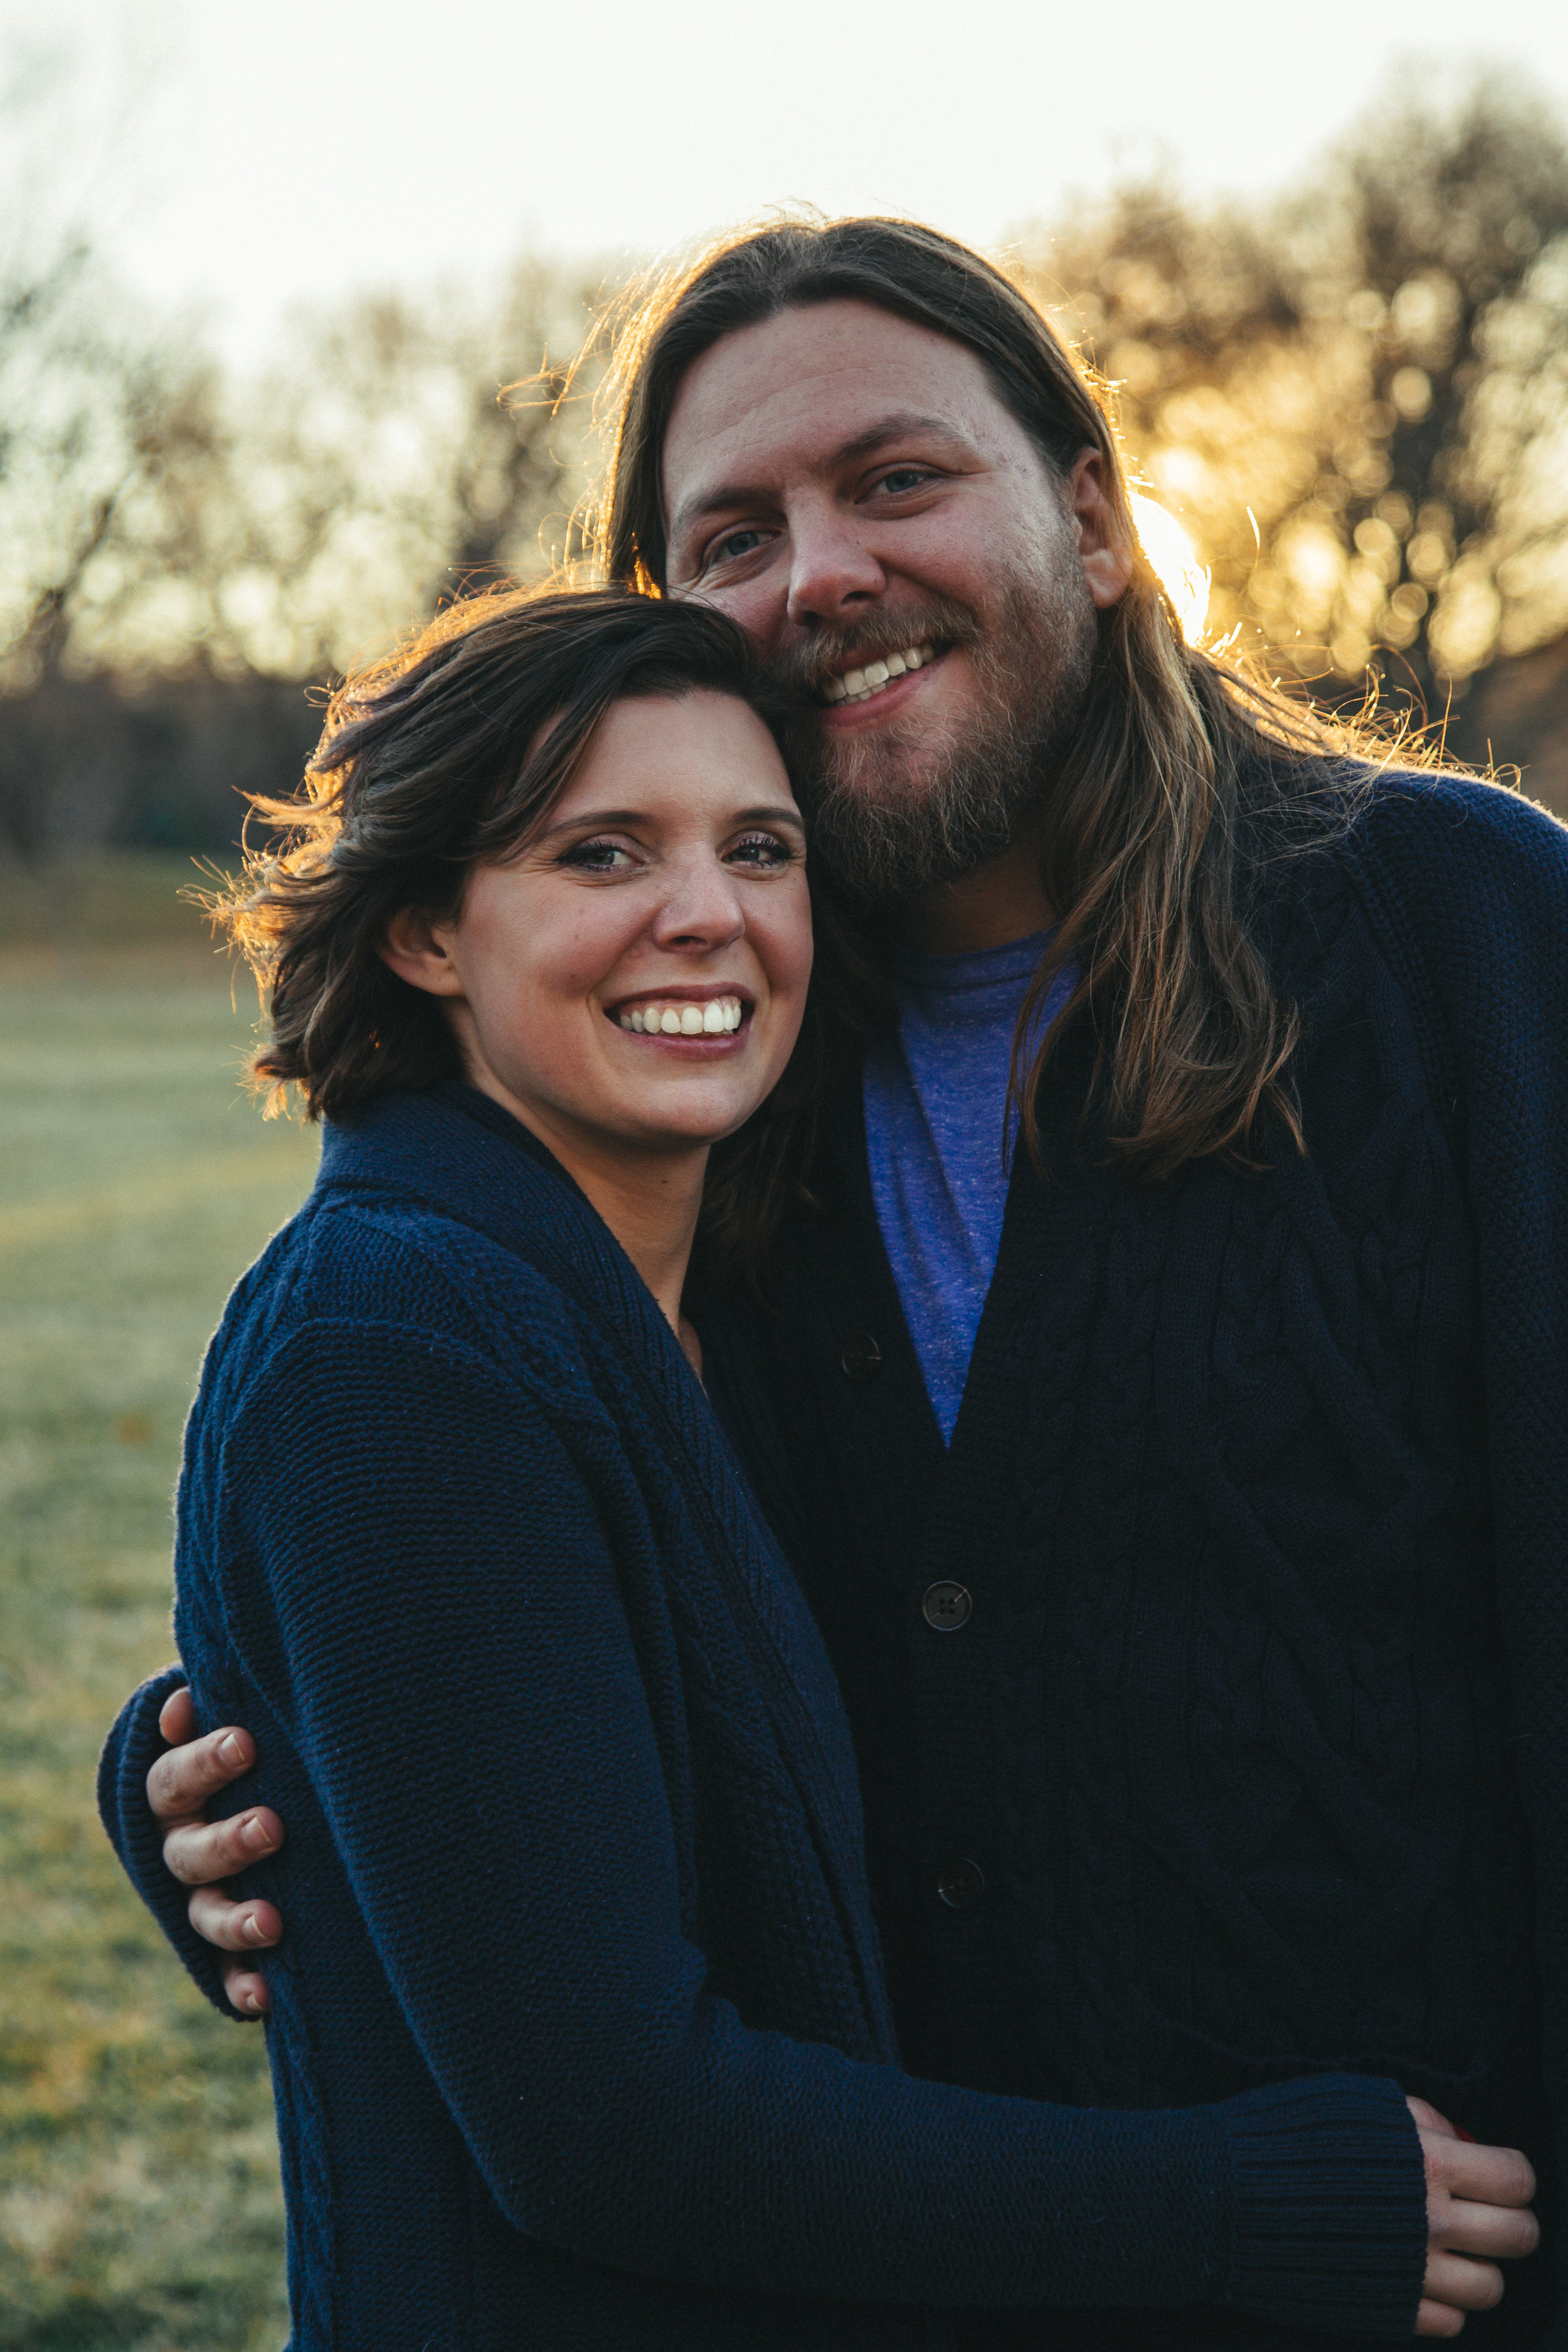 Tom + Kailey Engagements (14 of 24).jpg